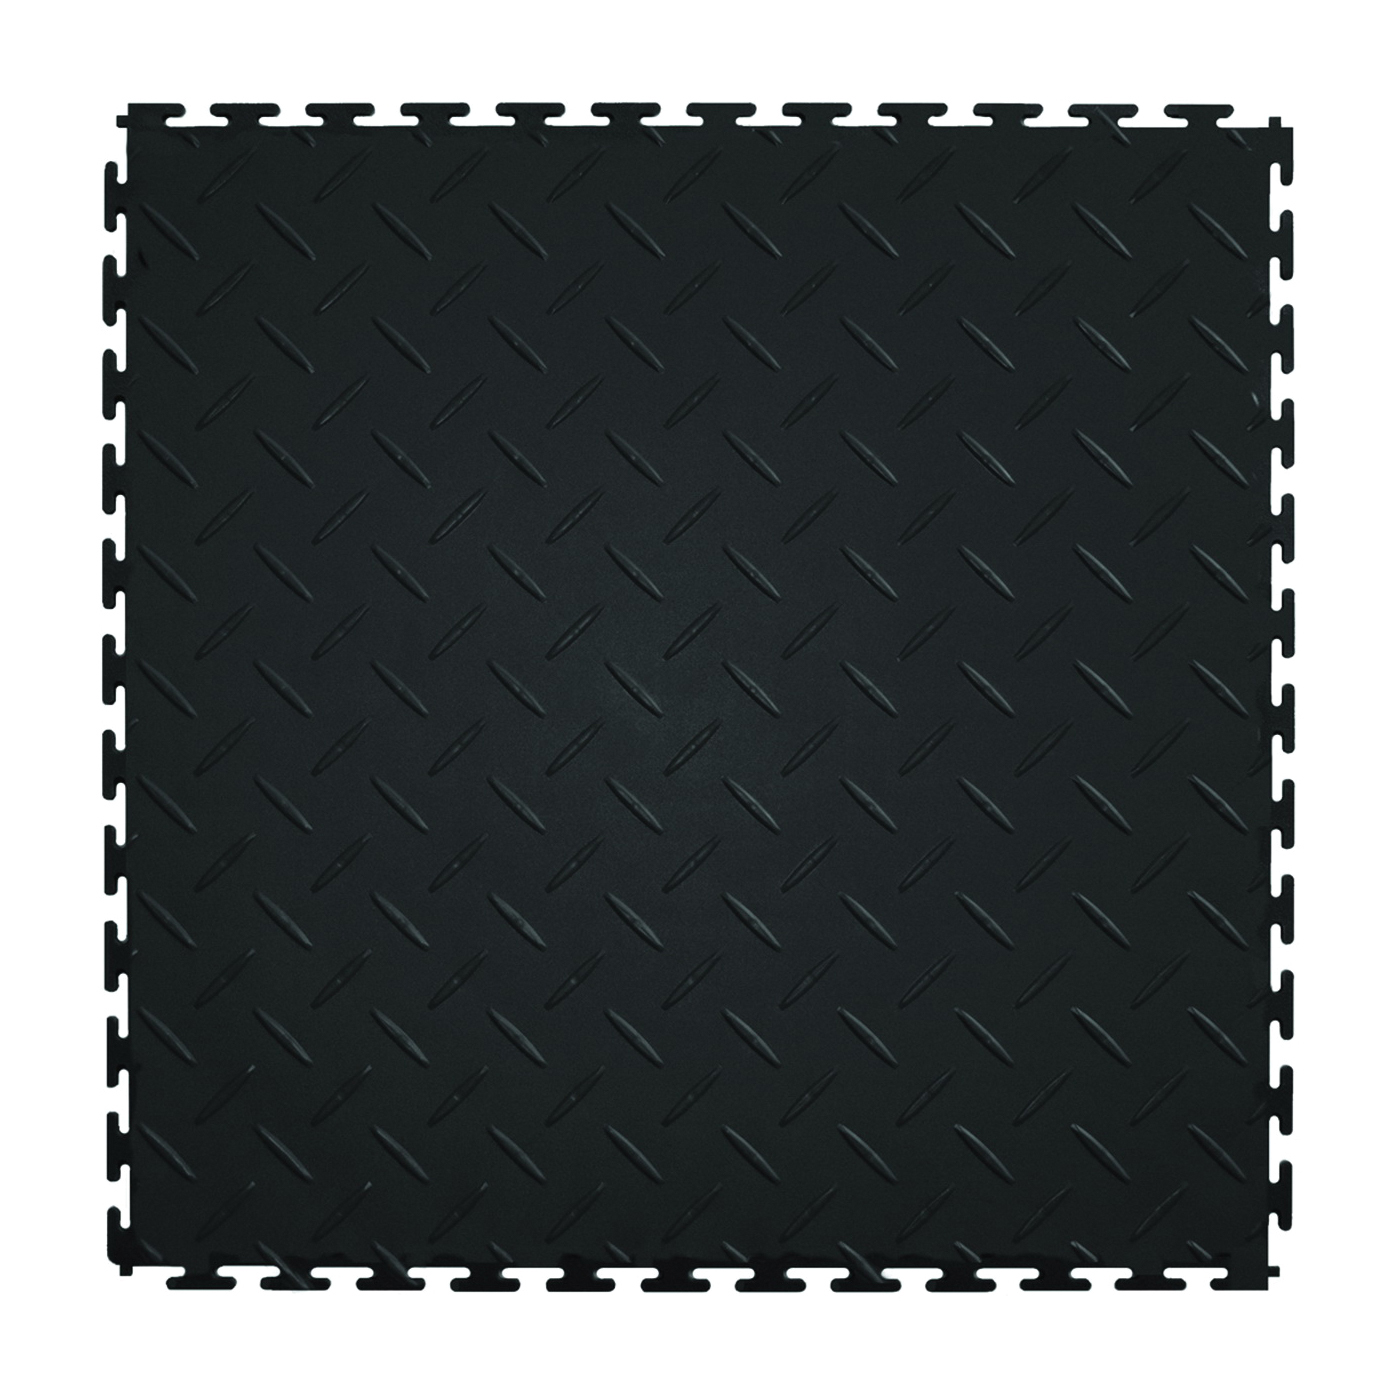 Picture of PERFECTION FLOOR TILE Diamond Plate ITDP450BK45 Floor Tile, 20-1/2 in L Tile, 20-1/2 in W Tile, Checker Plate Pattern